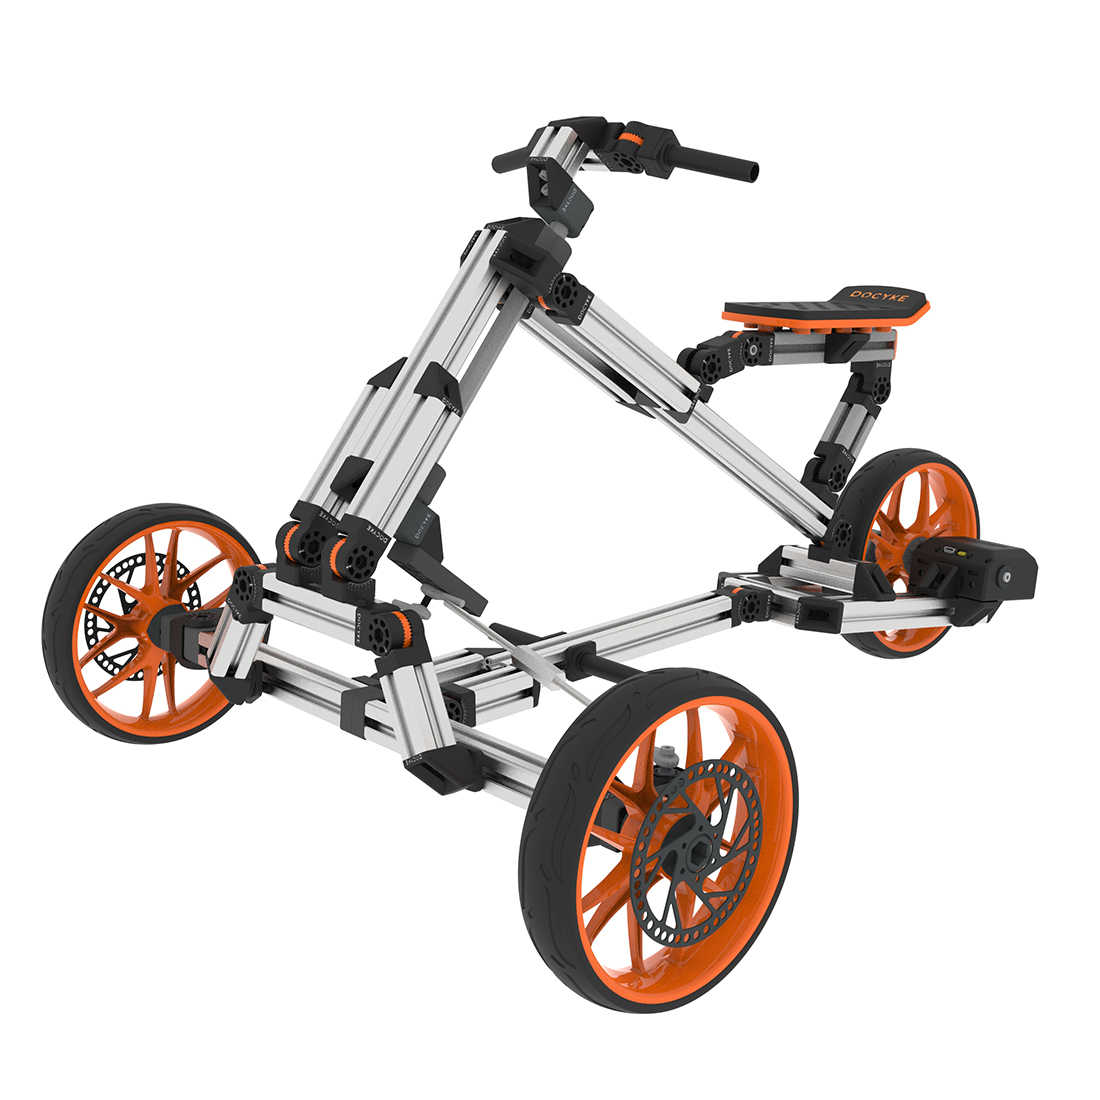 Docyke DIY Creative Constructible Rides 10-in-1 Electric Bicycle Go Kart Balance Scooter with Aluminium Multi-mode Frame for Kid